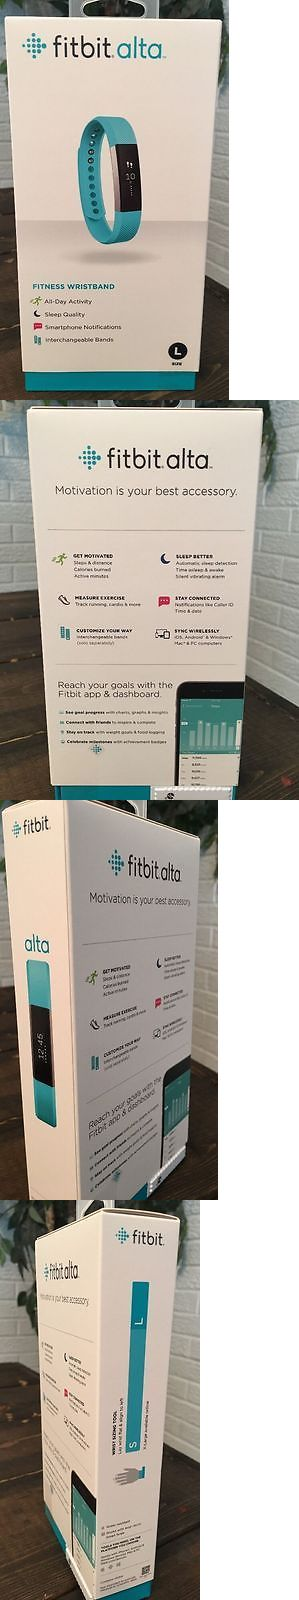 Activity Trackers 179798: New Fitbit Alta Fitness Wristband Large Teal Band Fitness Tracker -> BUY IT NOW ONLY: $83.95 on eBay!